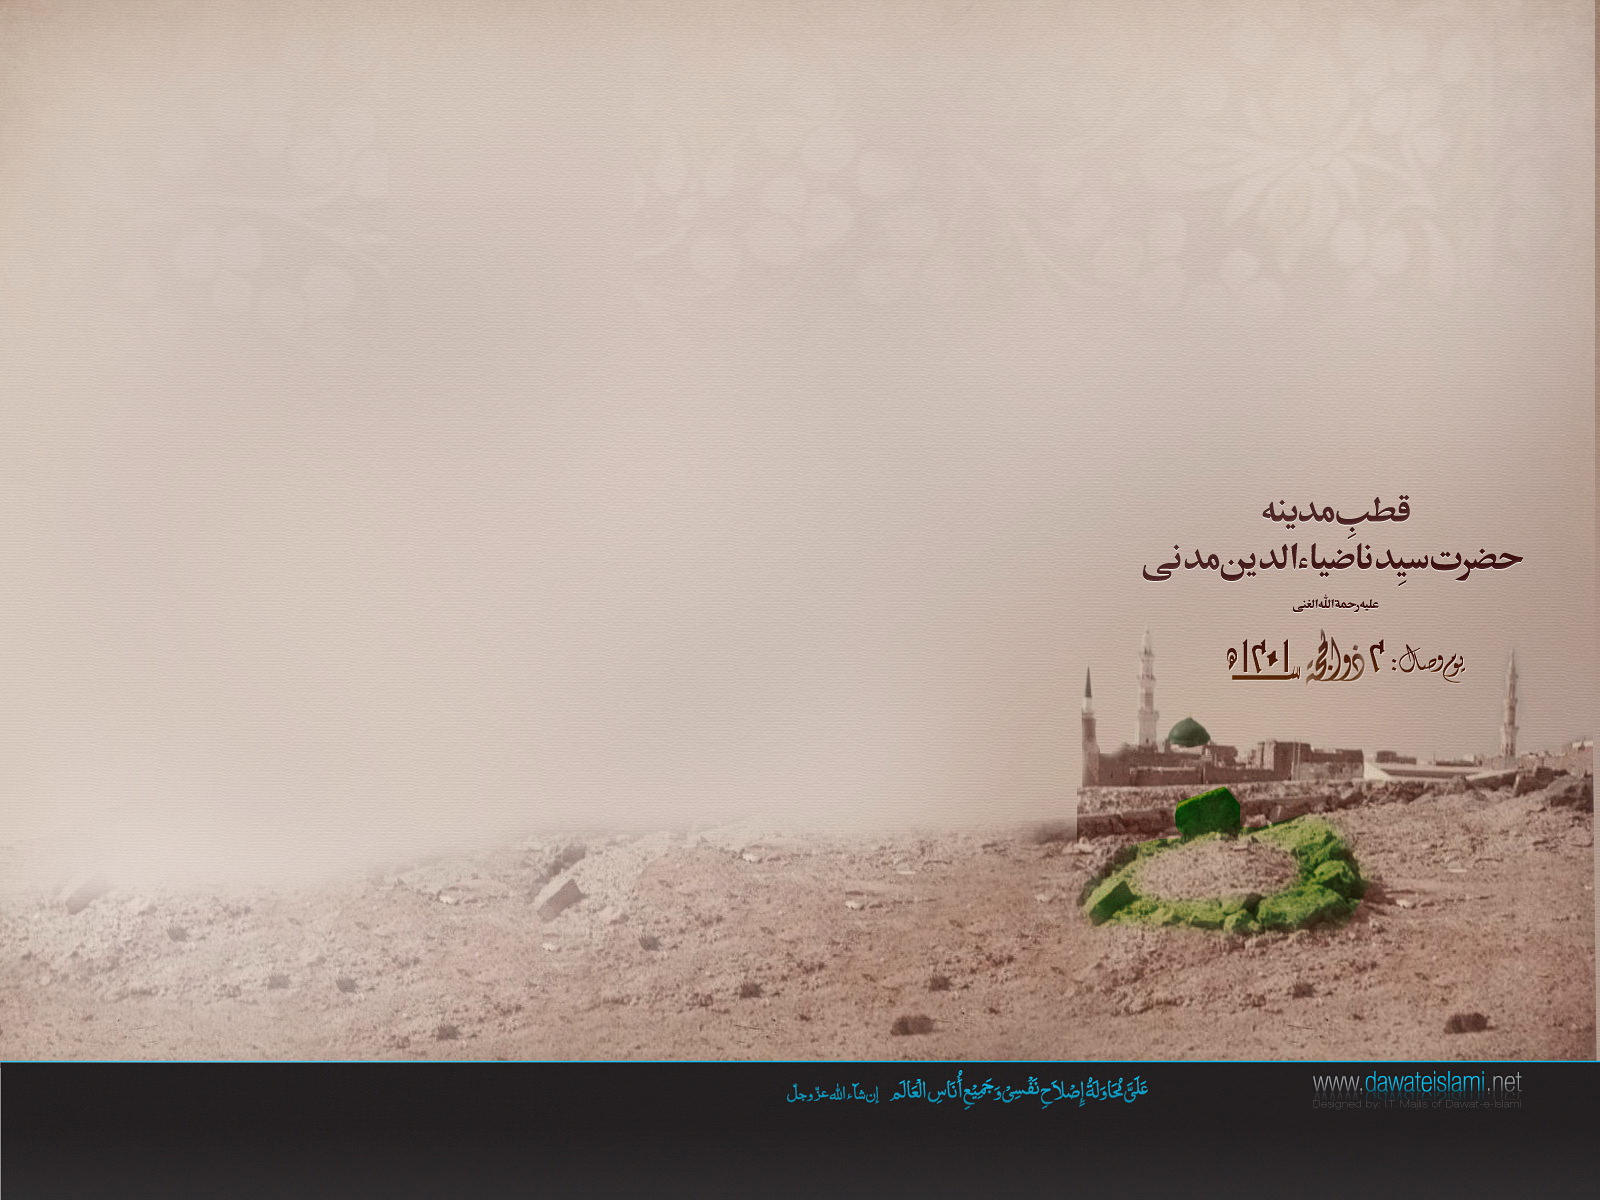 Wallpapers Faizan-e-Qutb-e-Madina 3